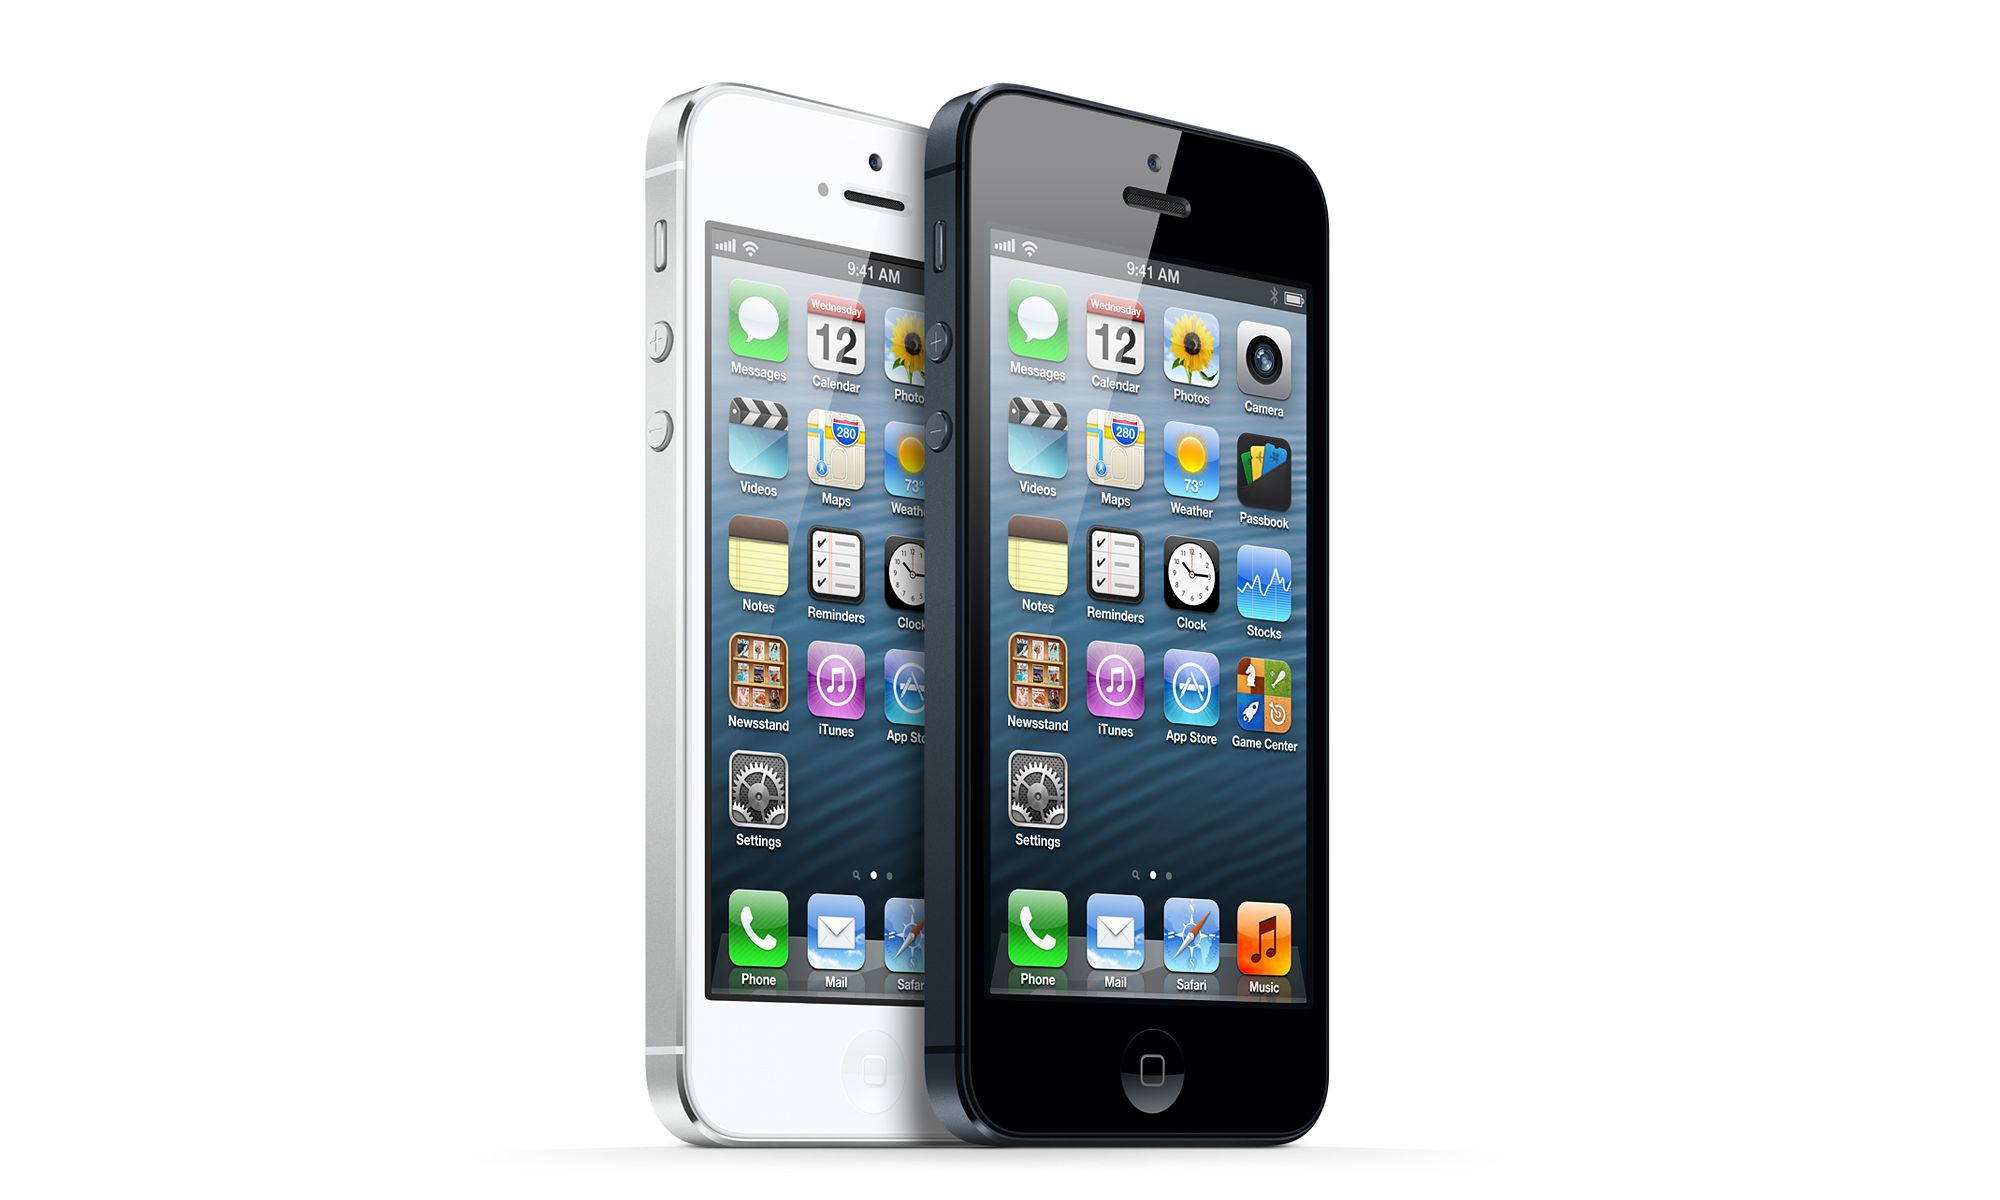 Shop for Smart Gadgets, Smart Phones, iPad, and iPods, using your Apple store coupons, your Apple promo codes, and save with Apple coupons as you enjoy the technological innovations at your Apple store.